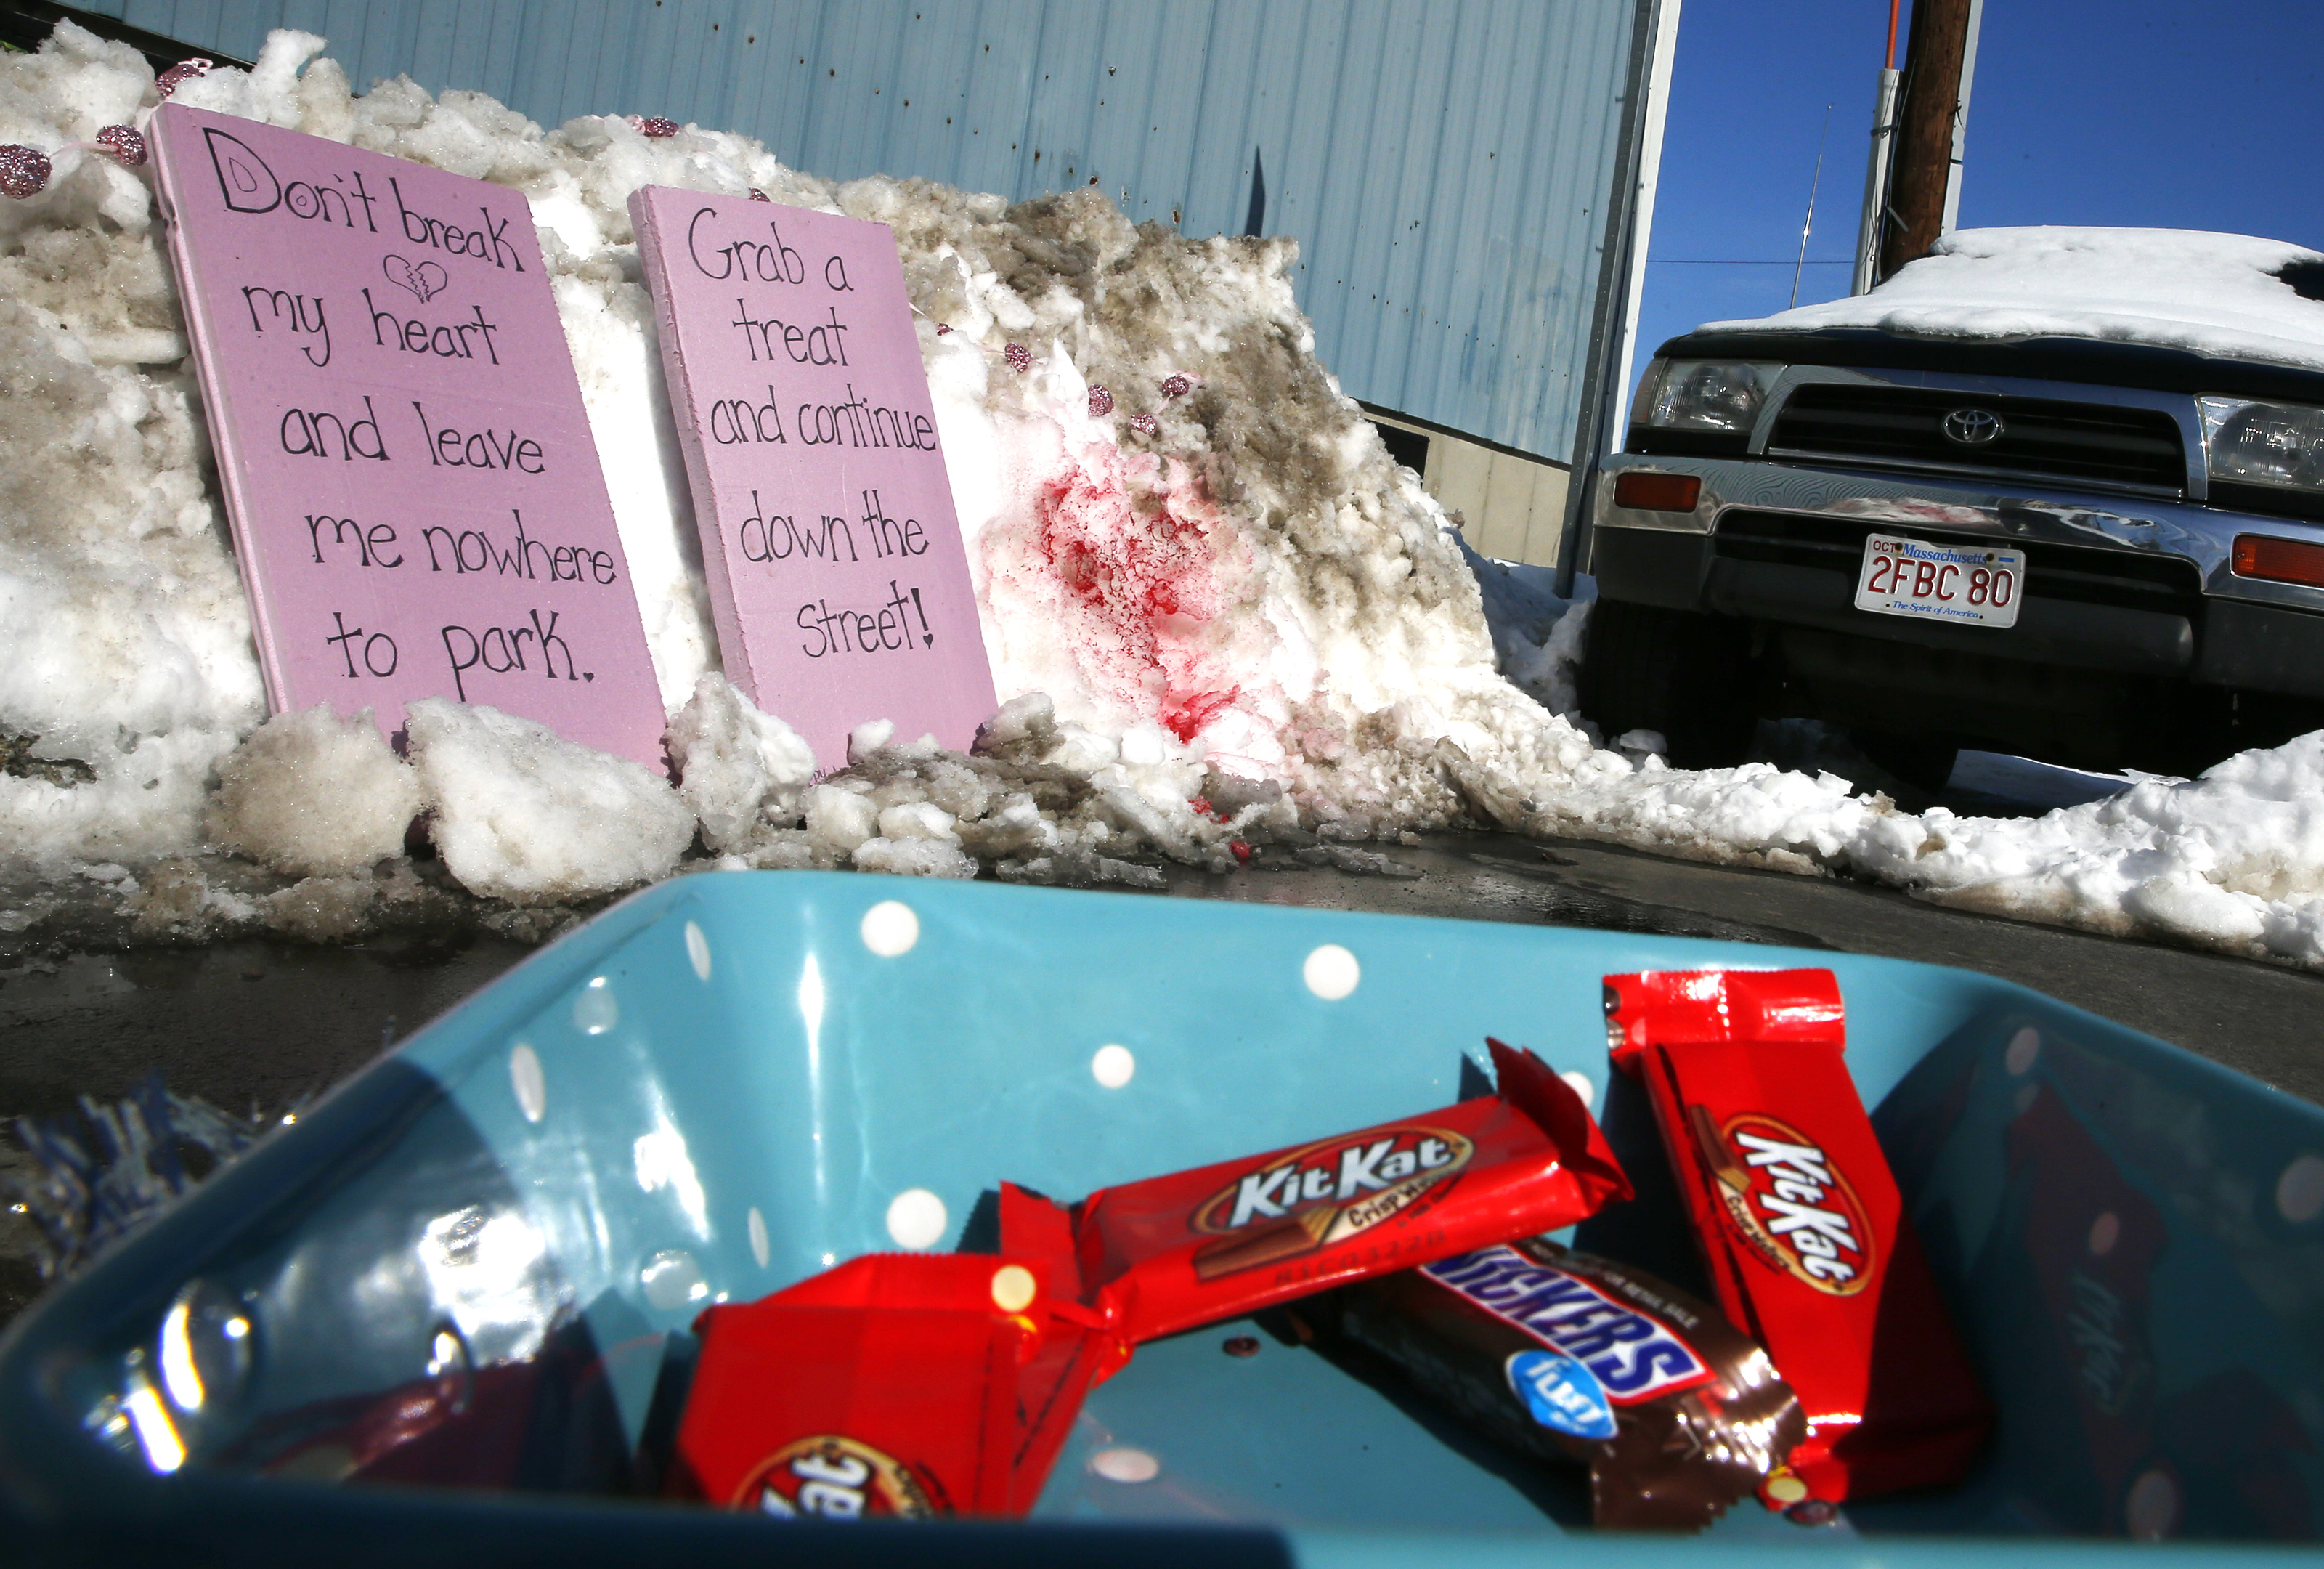 Funny signs leaning against a snow bank telling people to move on from a parking spot that's occupied by a wheelbarrow full of candy.